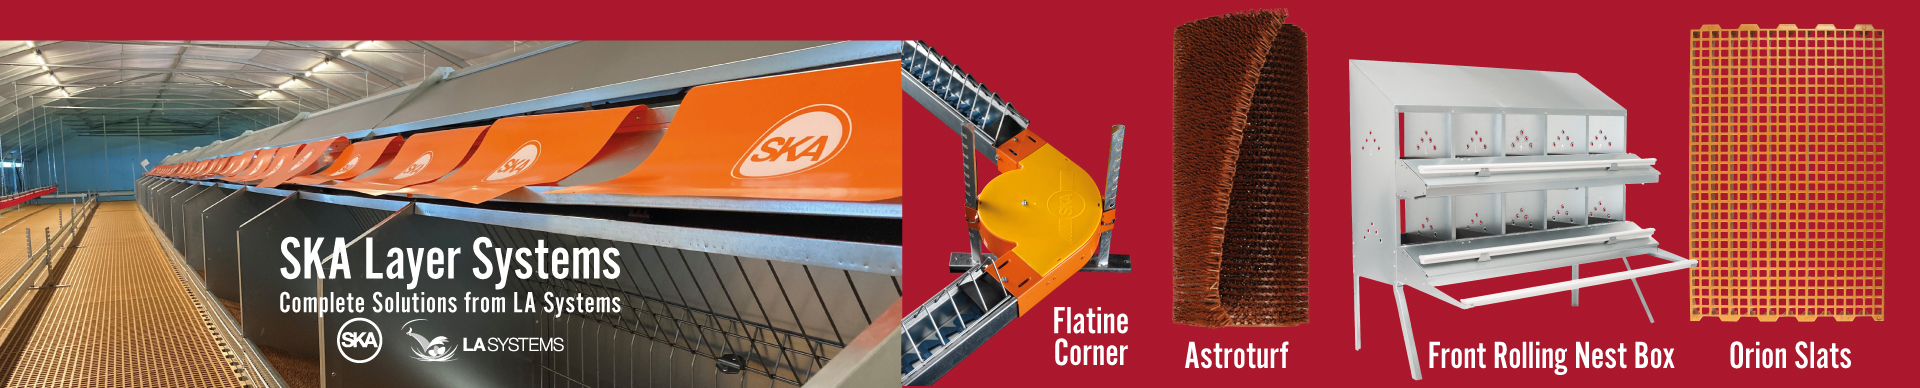 SKA Layer Systems. Complete solutions from LA Systems. Flatine corner, astroturk, front rolling nest box, orion slats